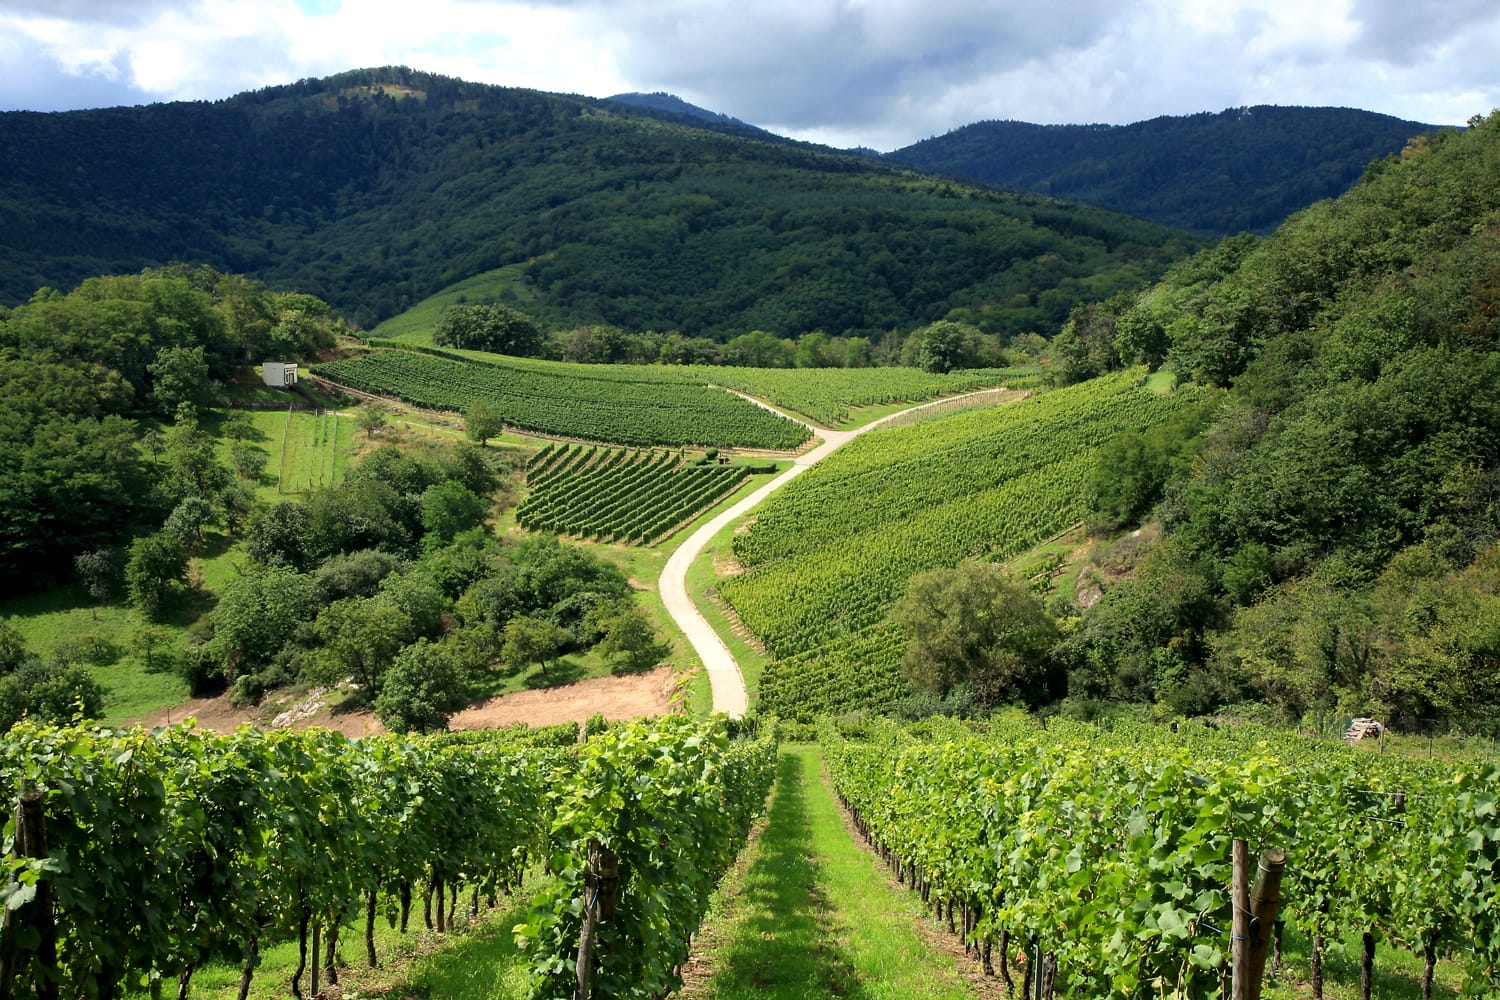 Route des vines in Alsace France